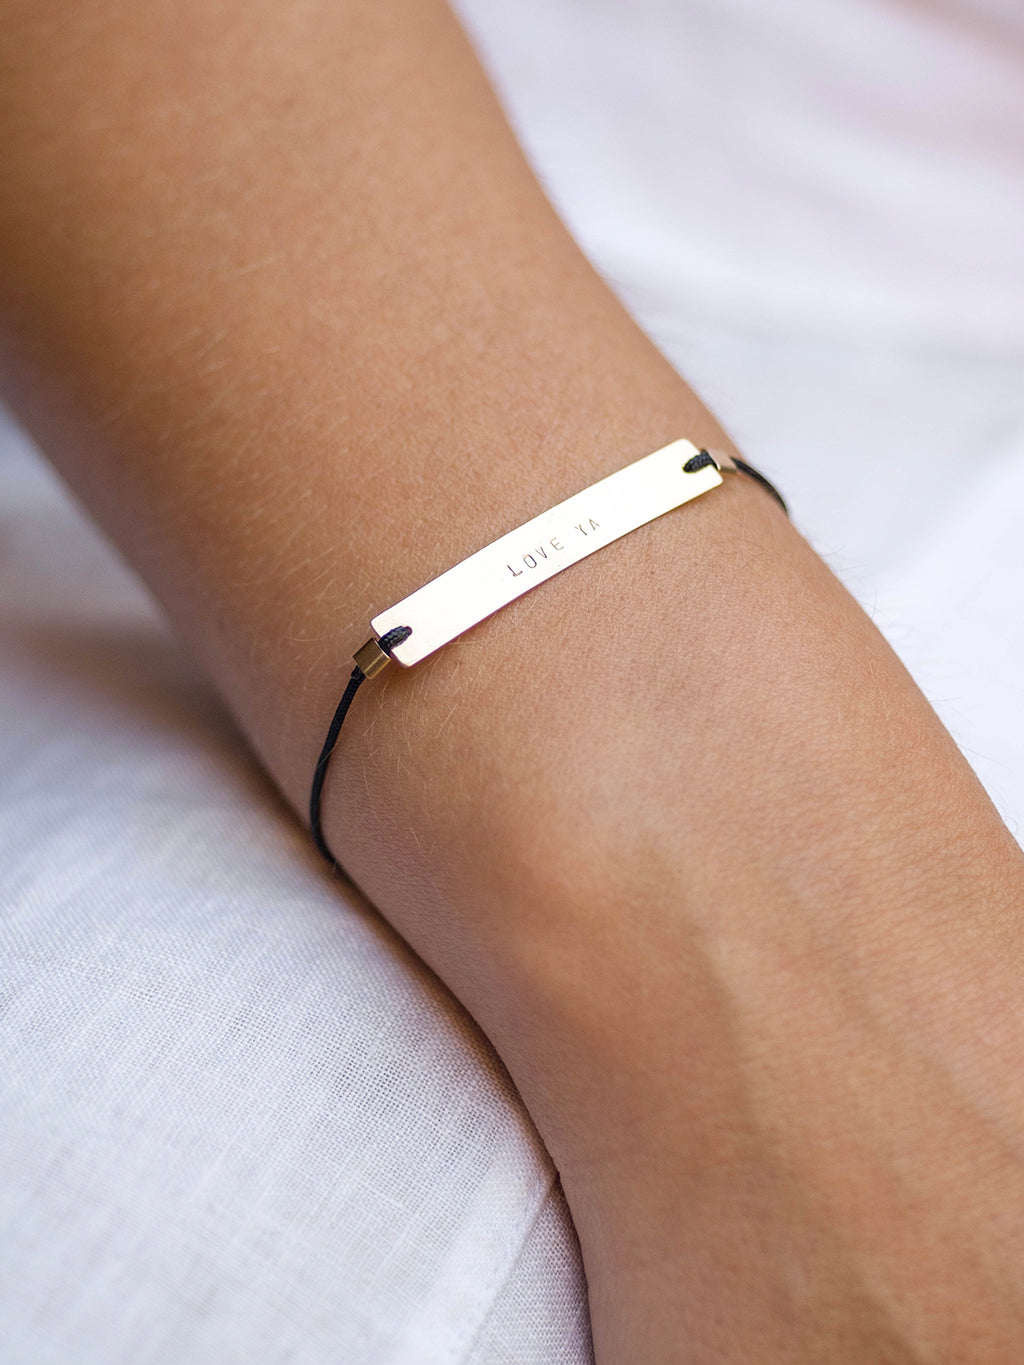 The Messenger bracelet